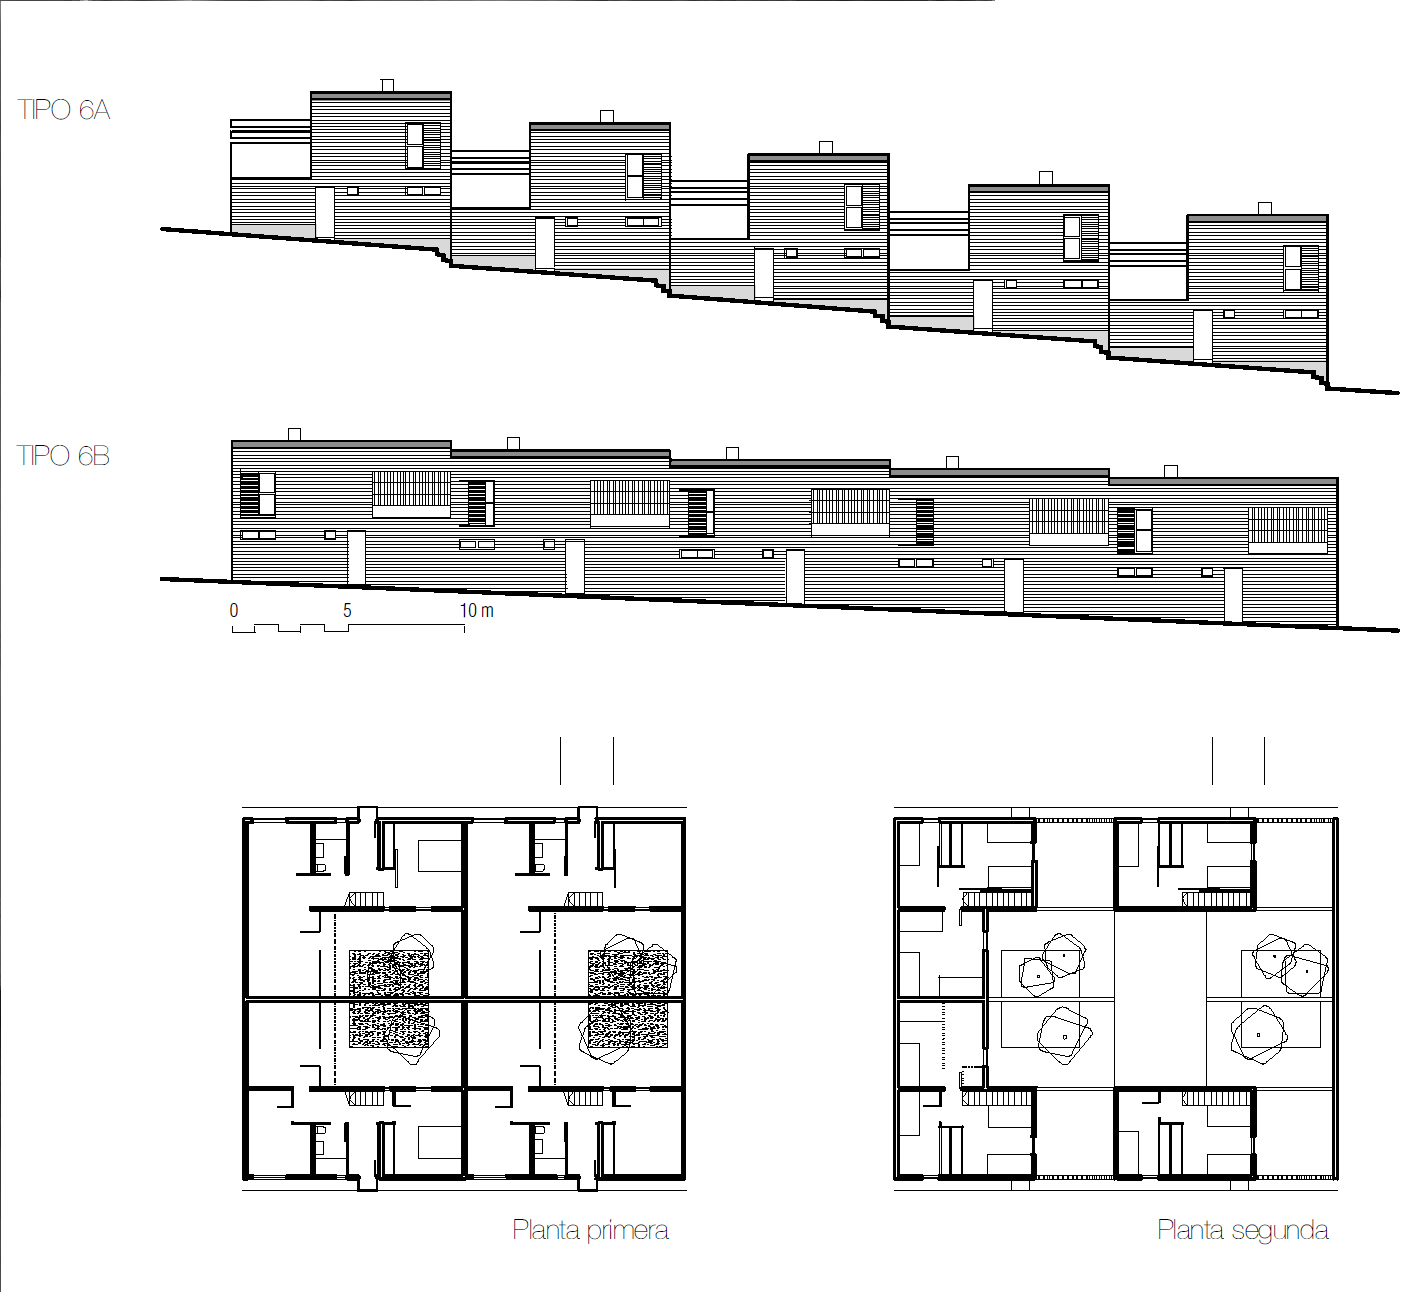 Good Further Documentation: Here Are Elevations Of The Patio Houses, Together  With The Plans, From Los Brillantes Años 50: